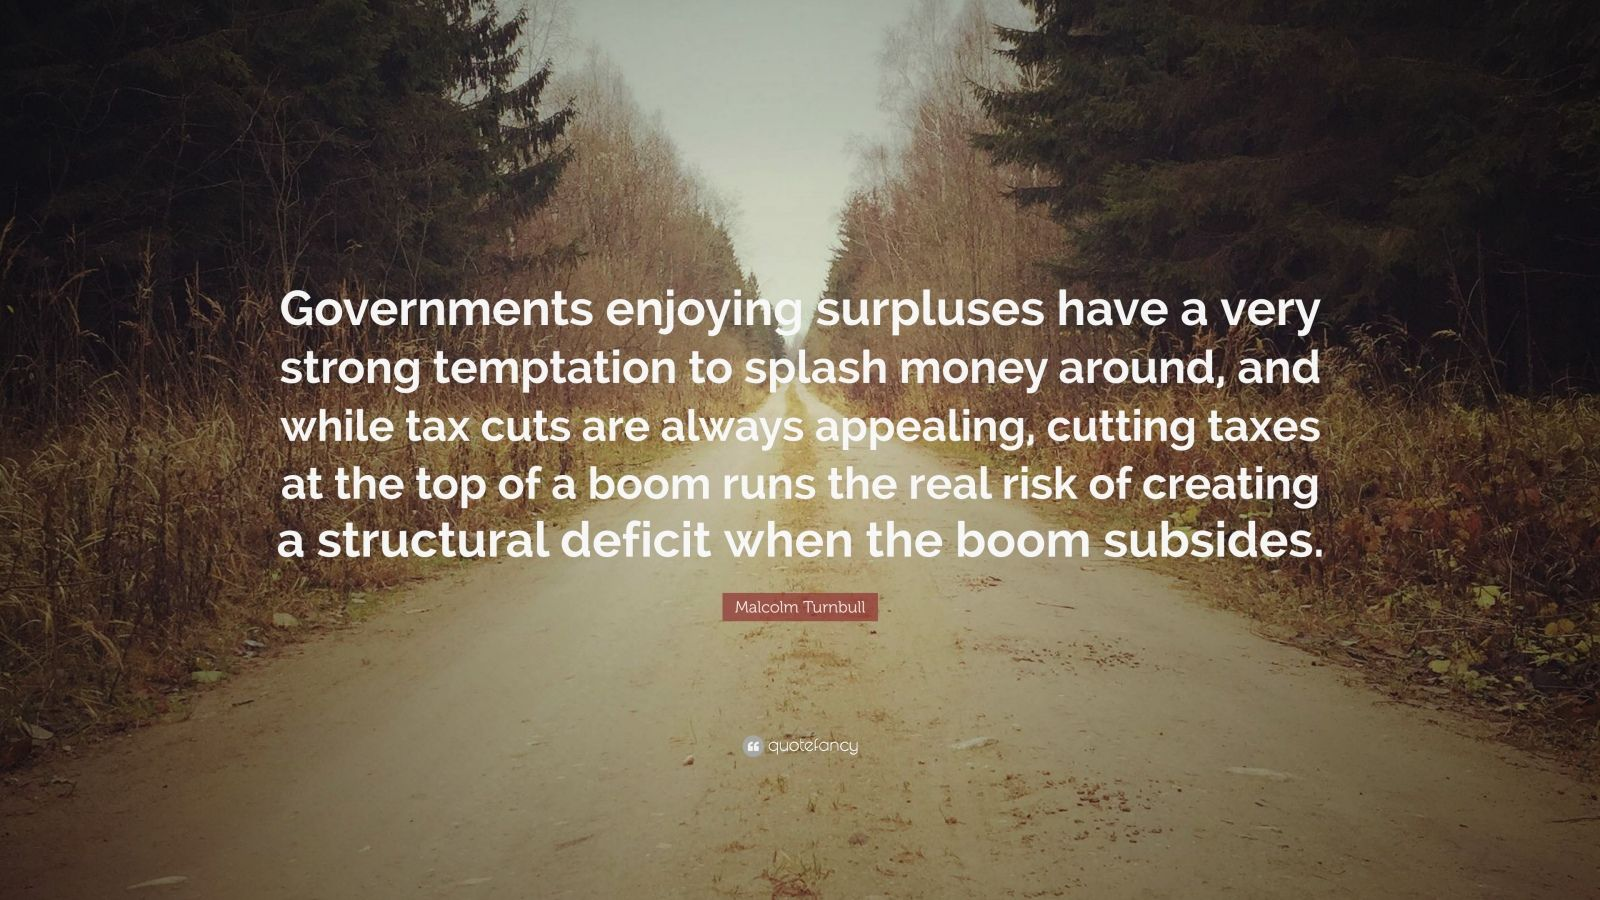 "Malcolm Turnbull Quote: ""Governments enjoying surpluses have a very strong temptation to splash money around, and while tax cuts are always appealing, cutting taxes at the top of a boom runs the real risk of creating a structural deficit when the boom subsides."""